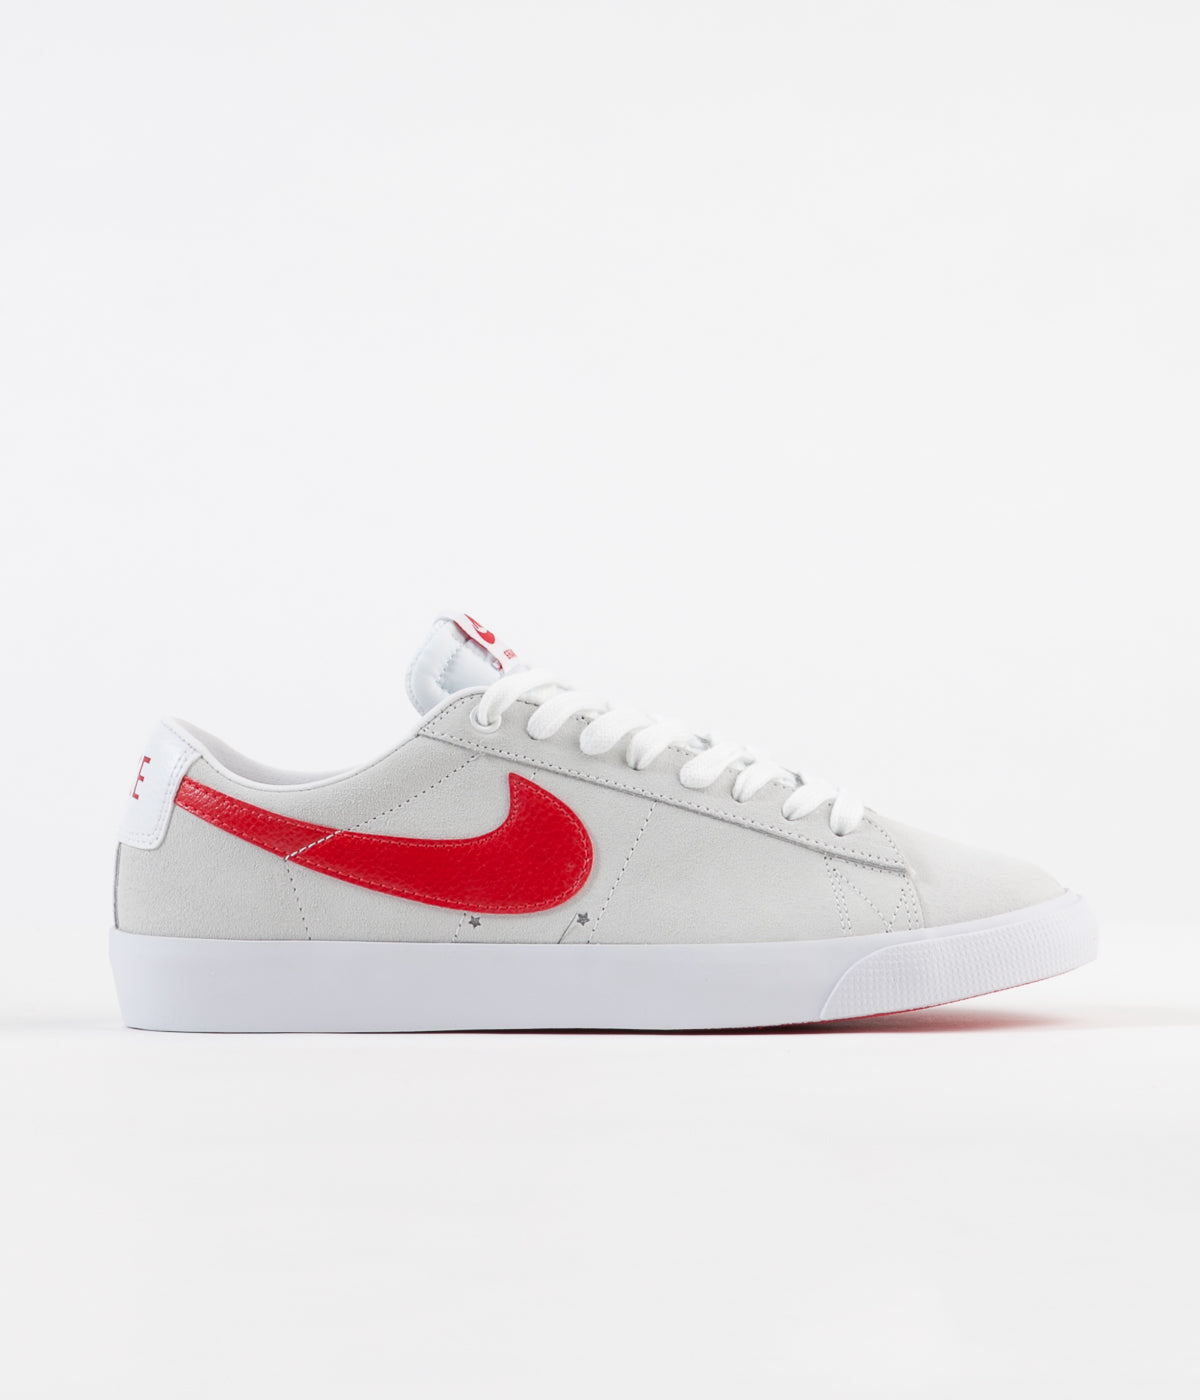 Nike SB Blazer Low GT Shoes - White / University Red | Flatspot